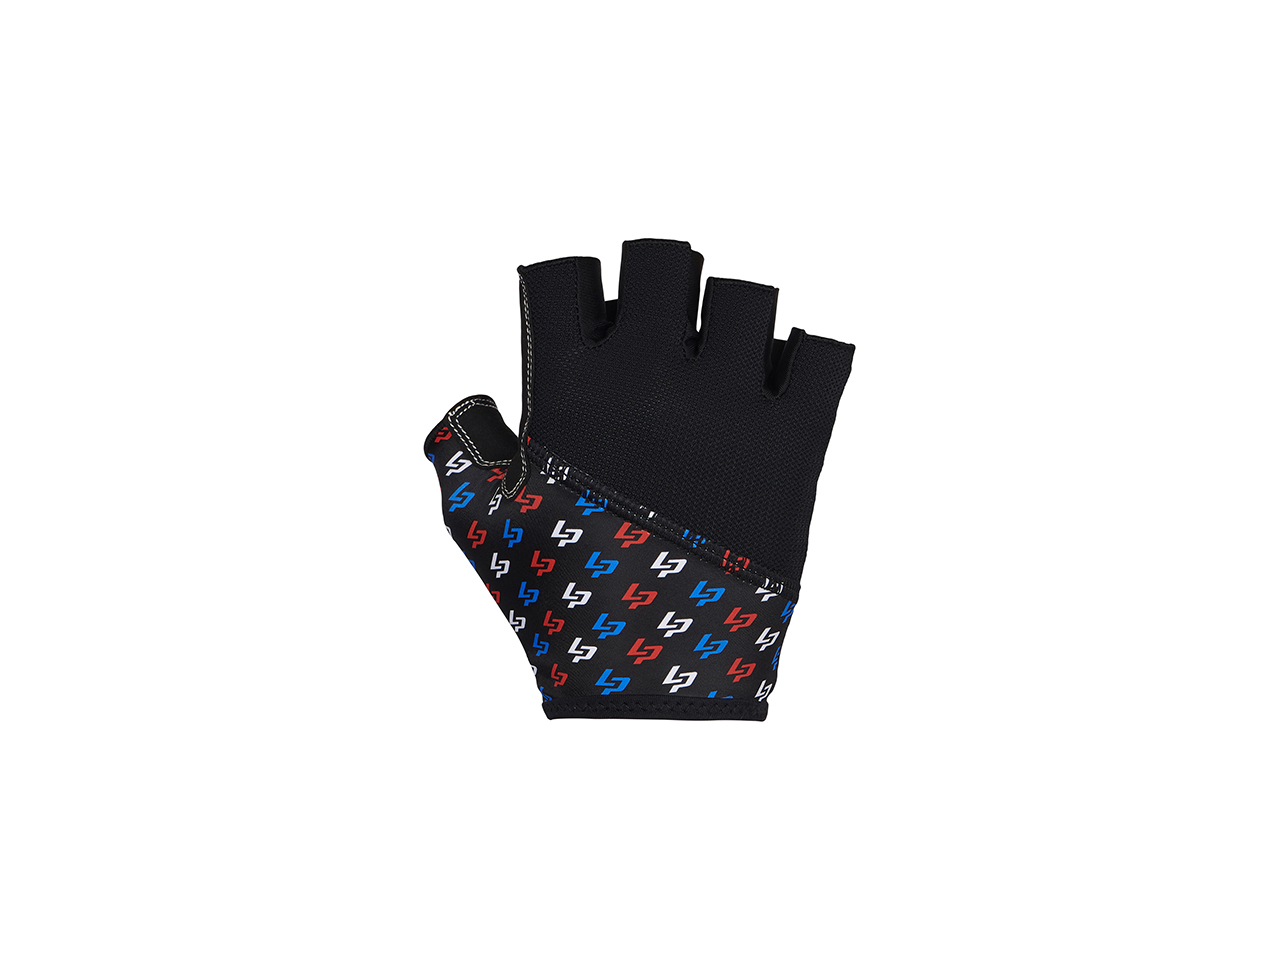 Lapierre So Frenchy cycling gloves - front